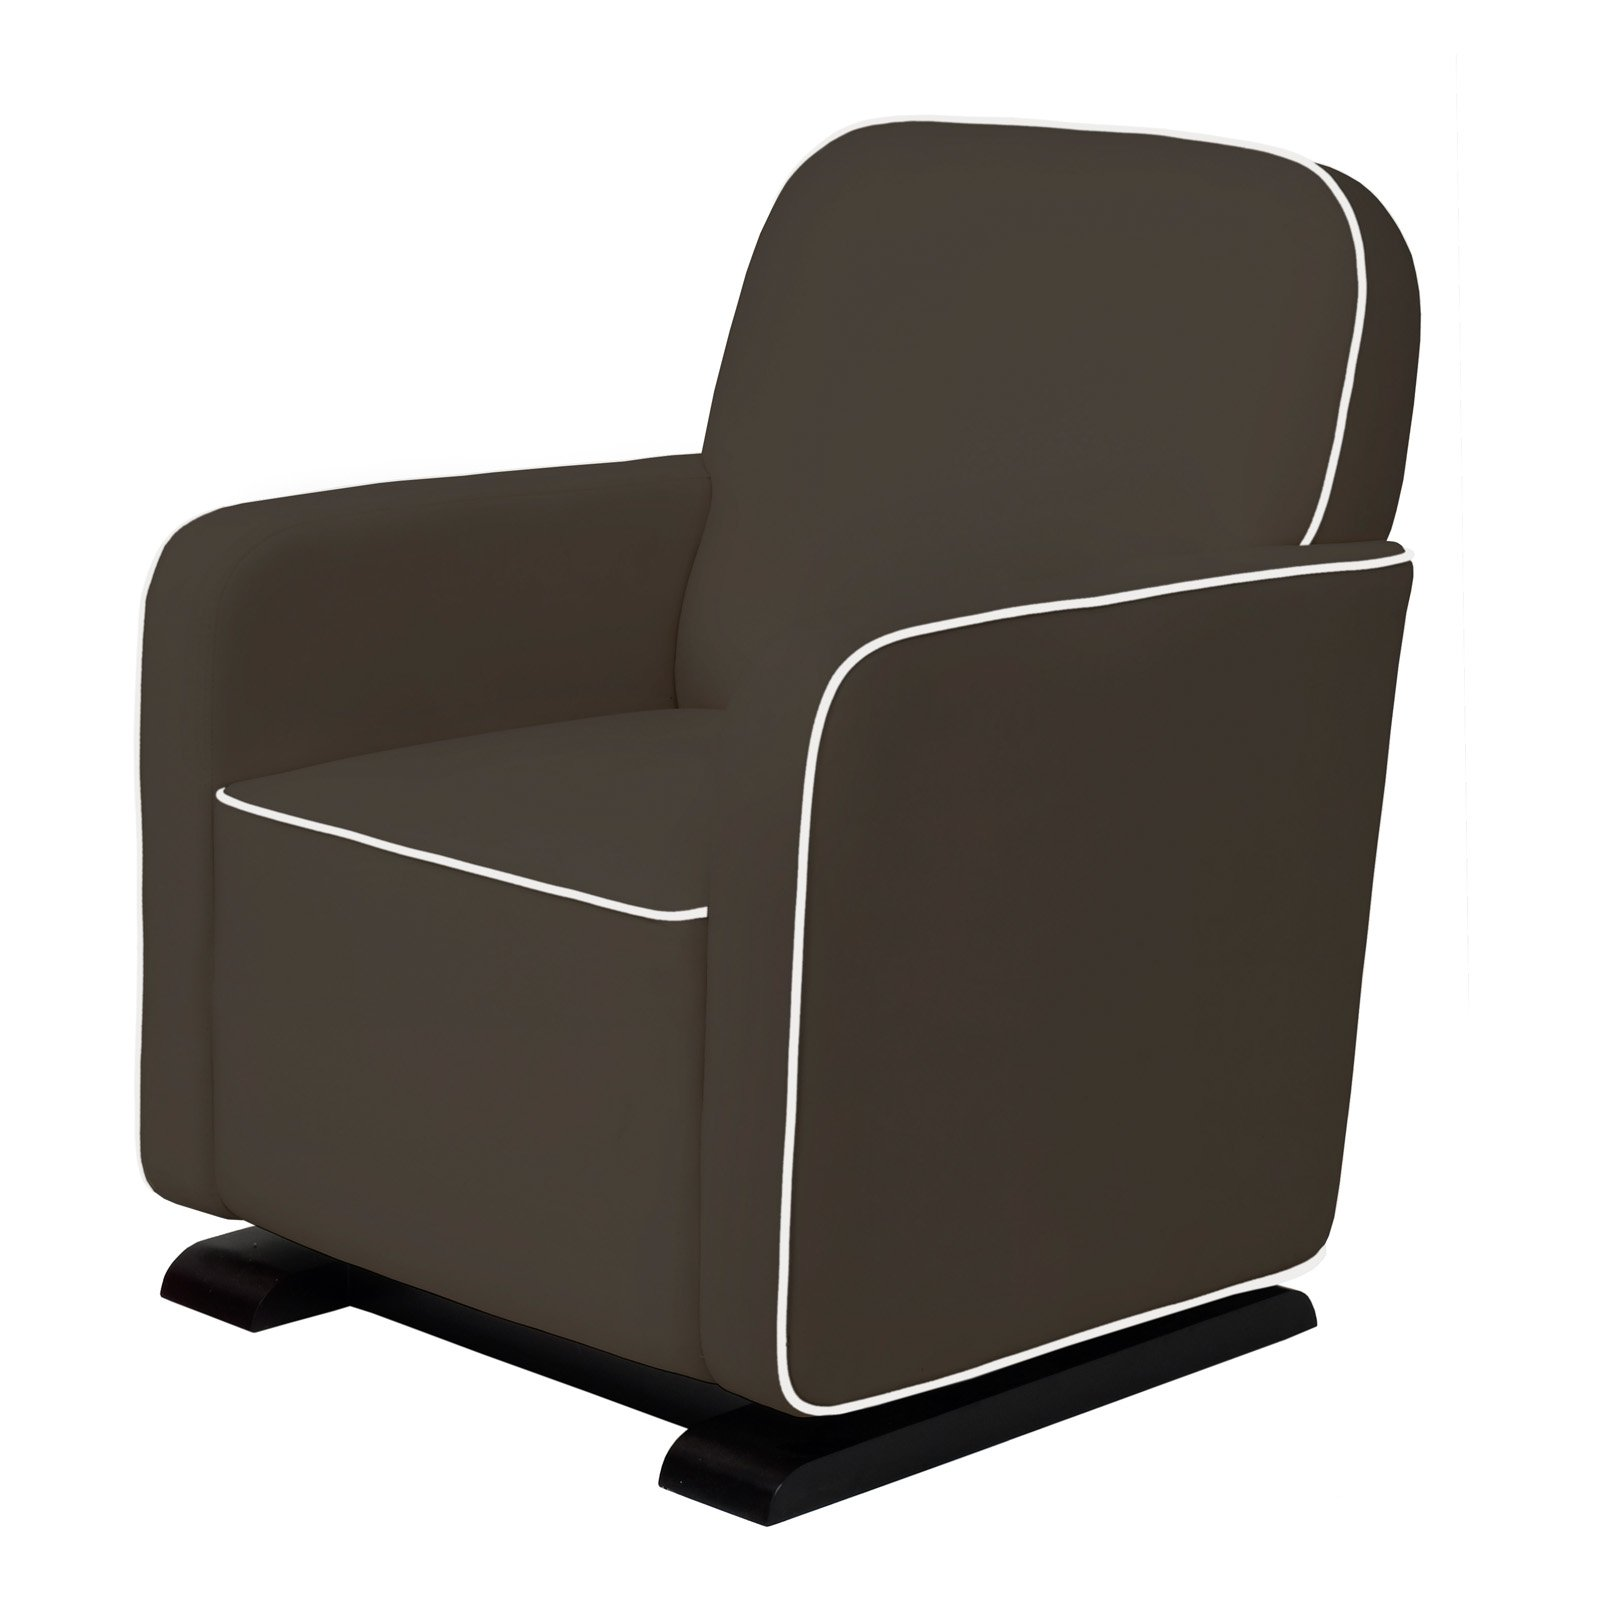 Babyletto Kyoto Glider in Slate with Ecru Piping